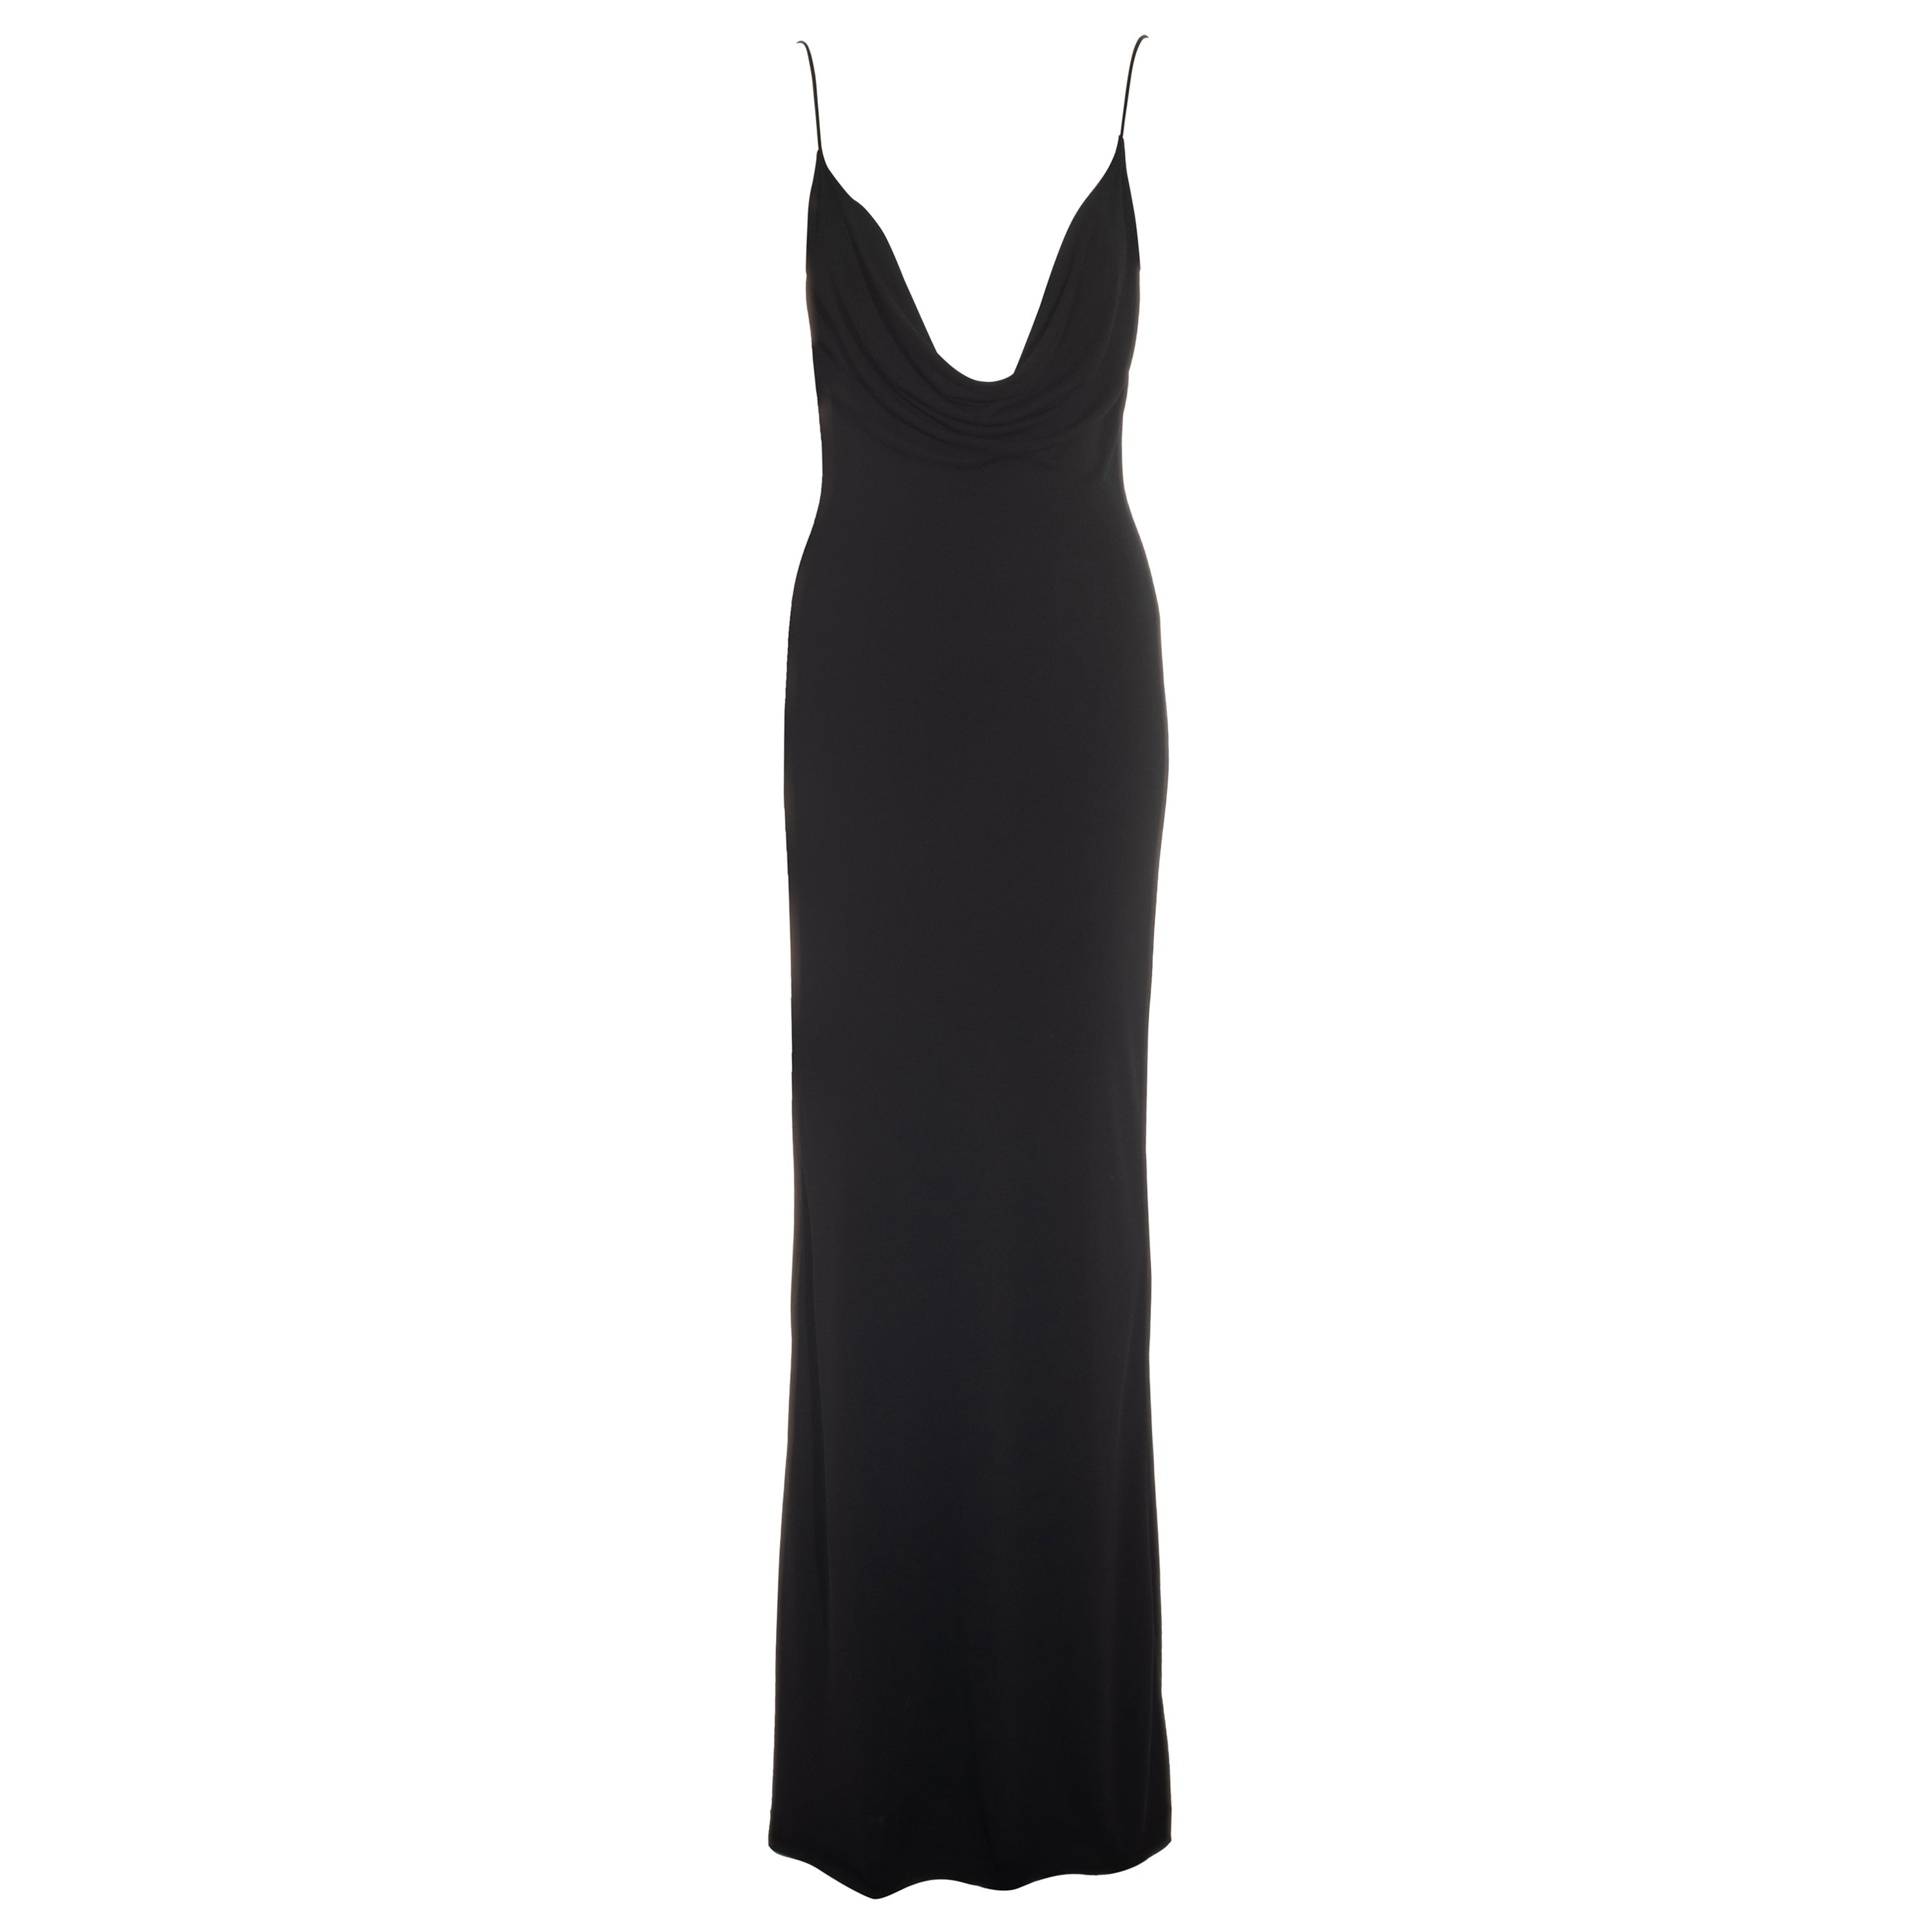 Gucci by Tom Ford black rayon jersey maxi dress with low plunge, fw 1997